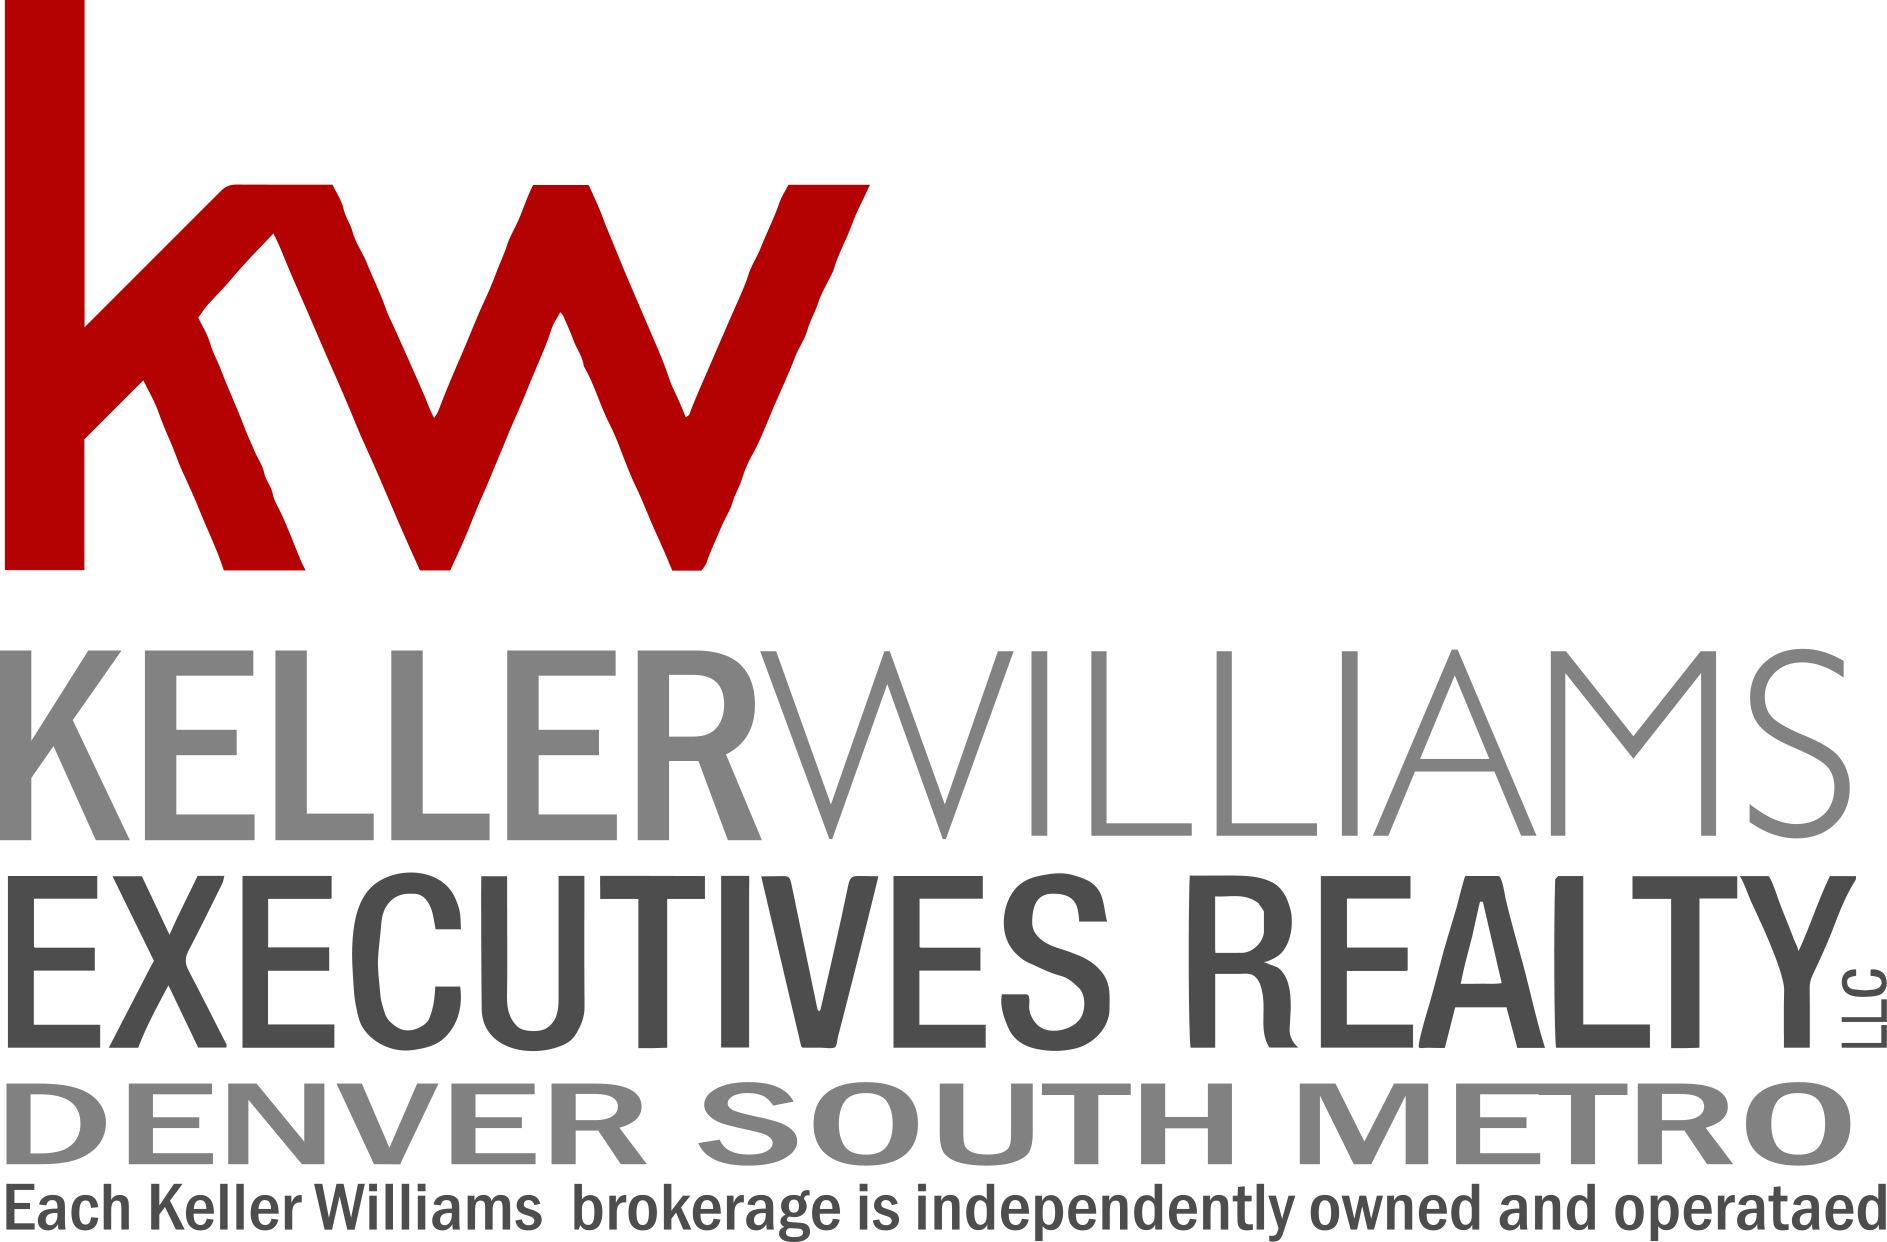 Keller Williams Executives